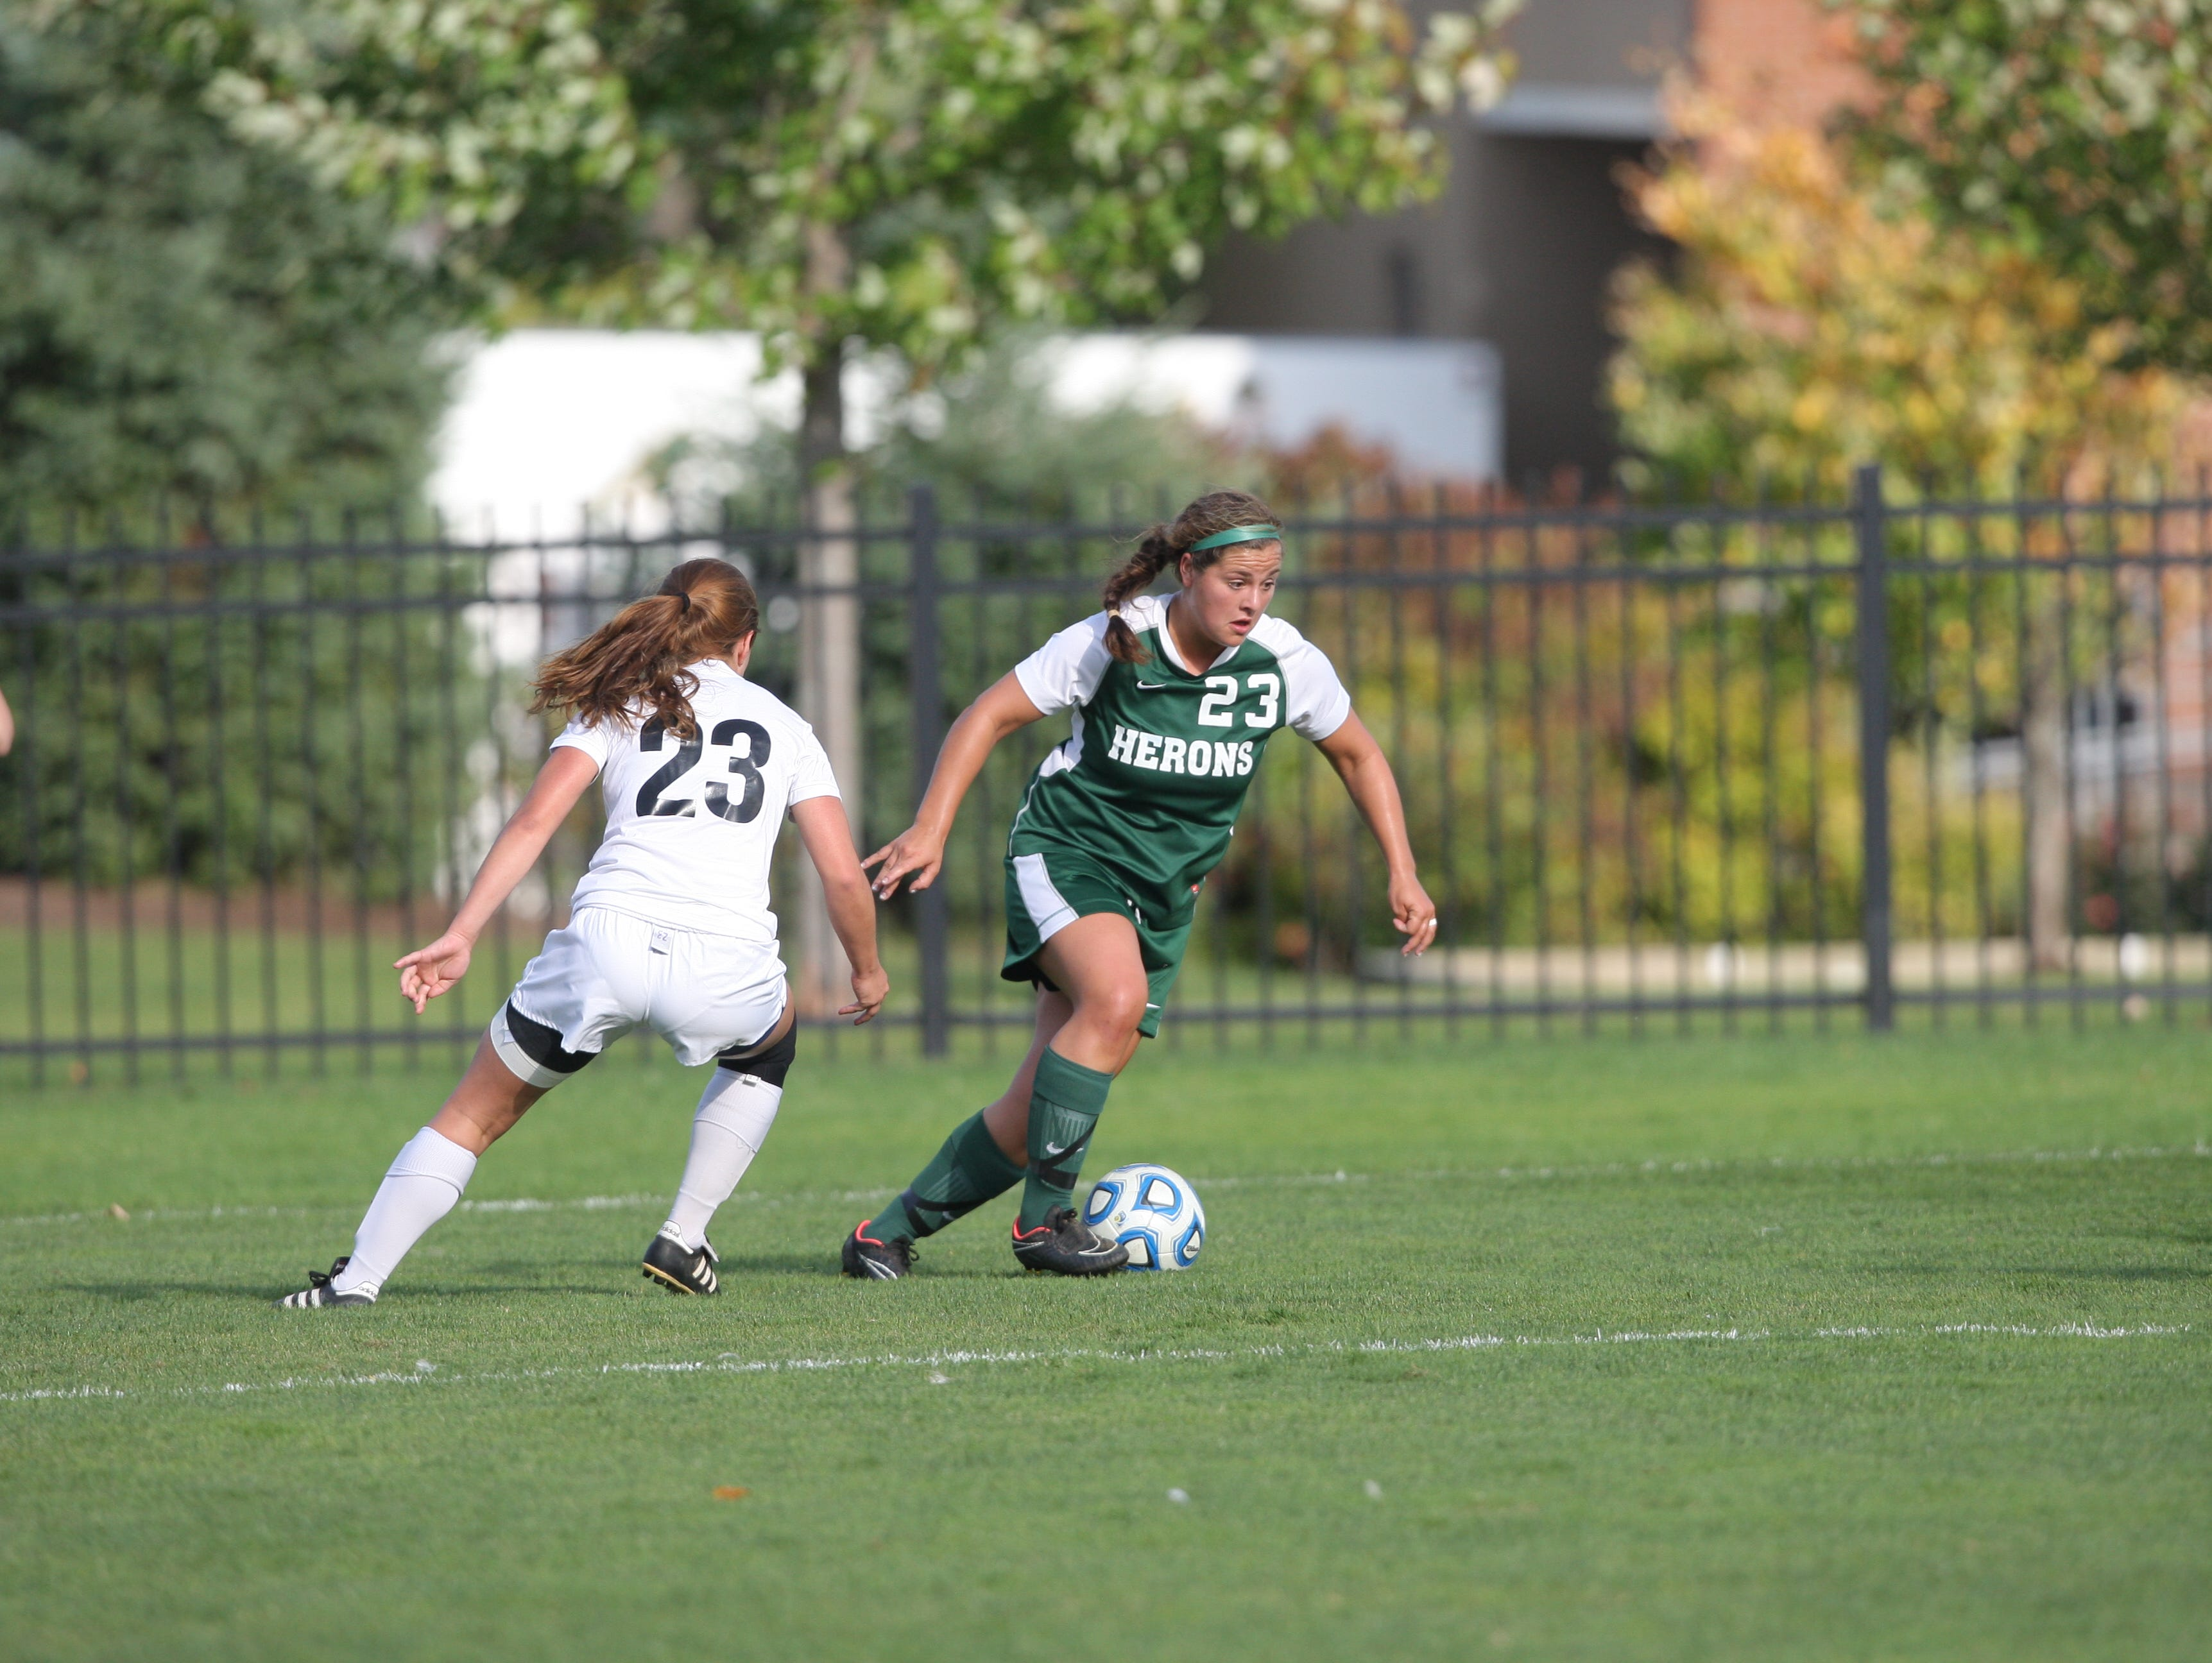 William and Smith senior Krista Longo notched a hat trick in a 5-0 win over St. Lawrence on Saturday afternoon.